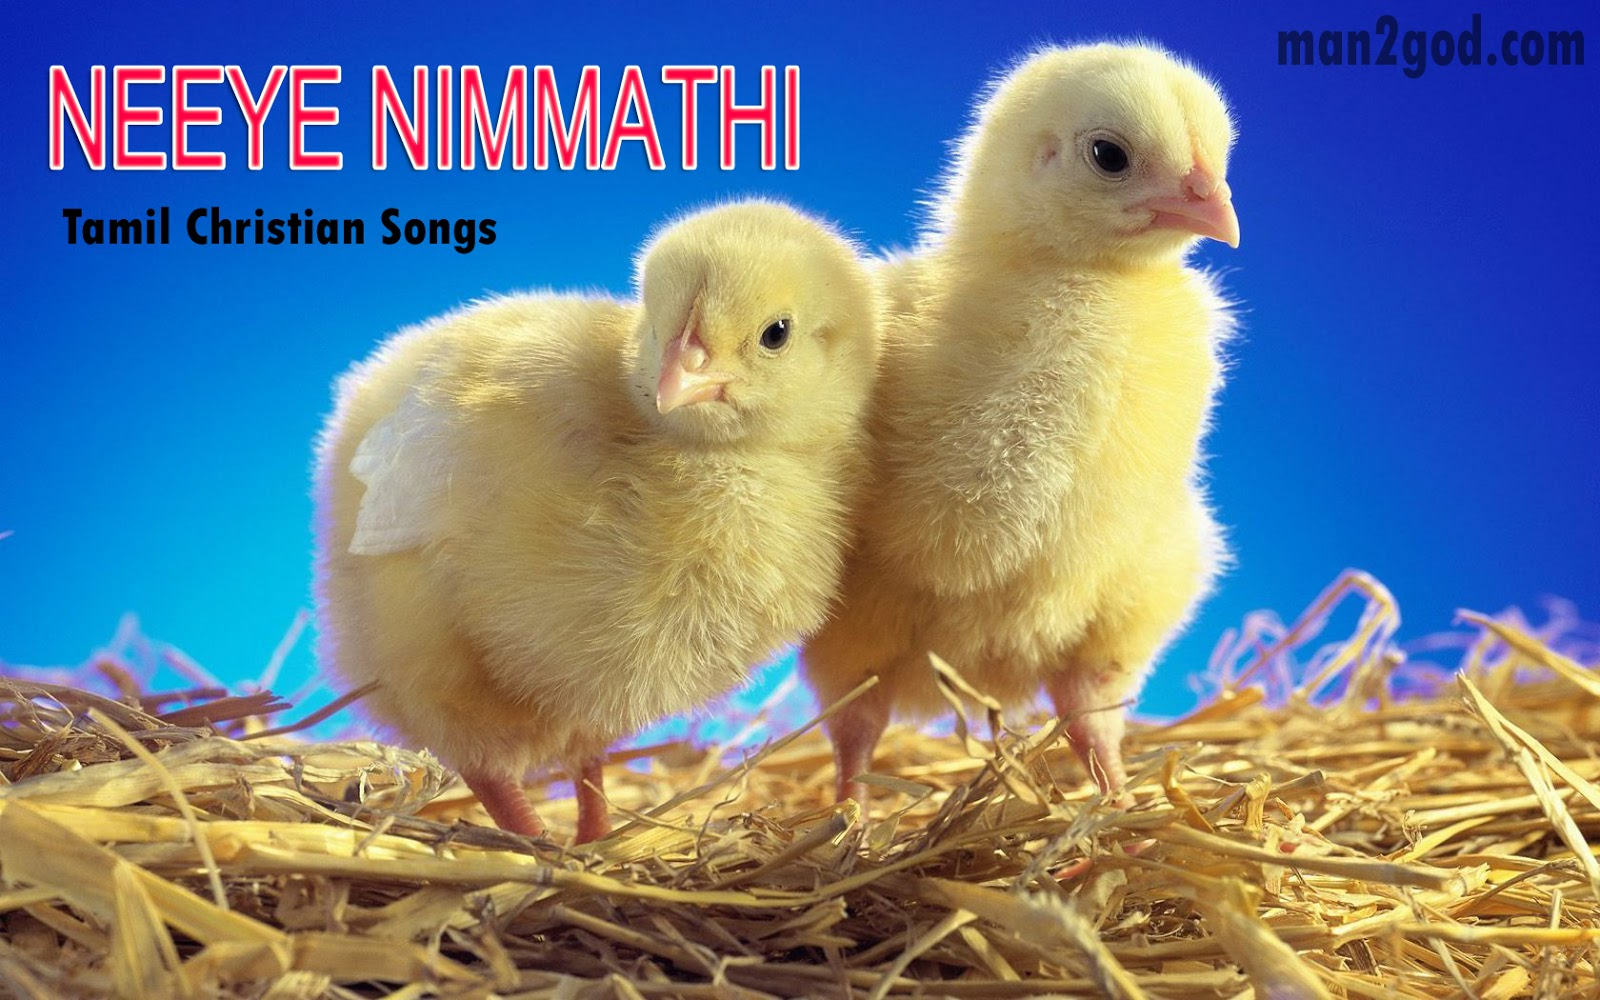 enthan amma album audio song free download in tamil